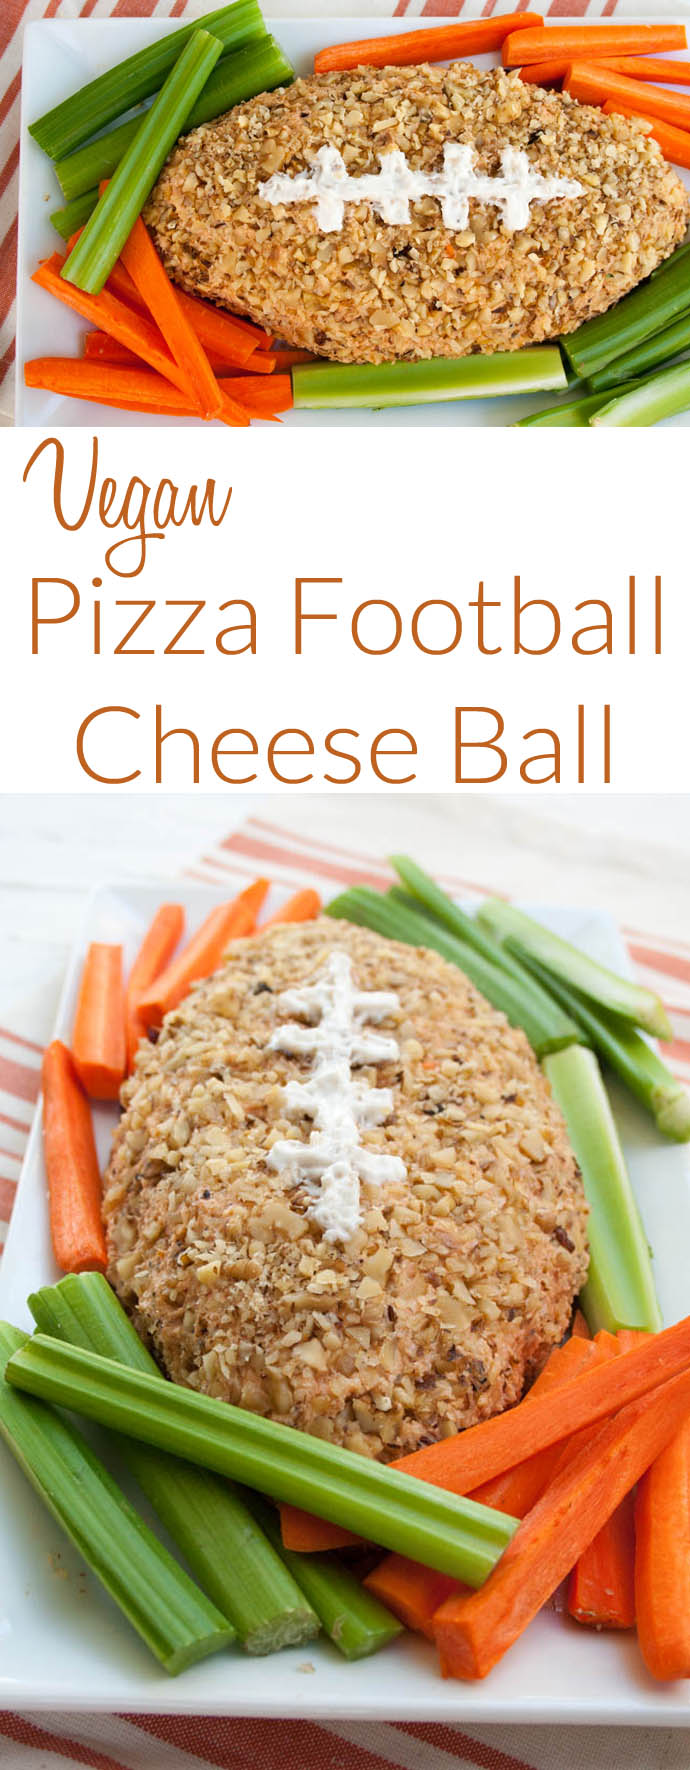 Vegan Pizza Football Cheese Ball collage photo with text.